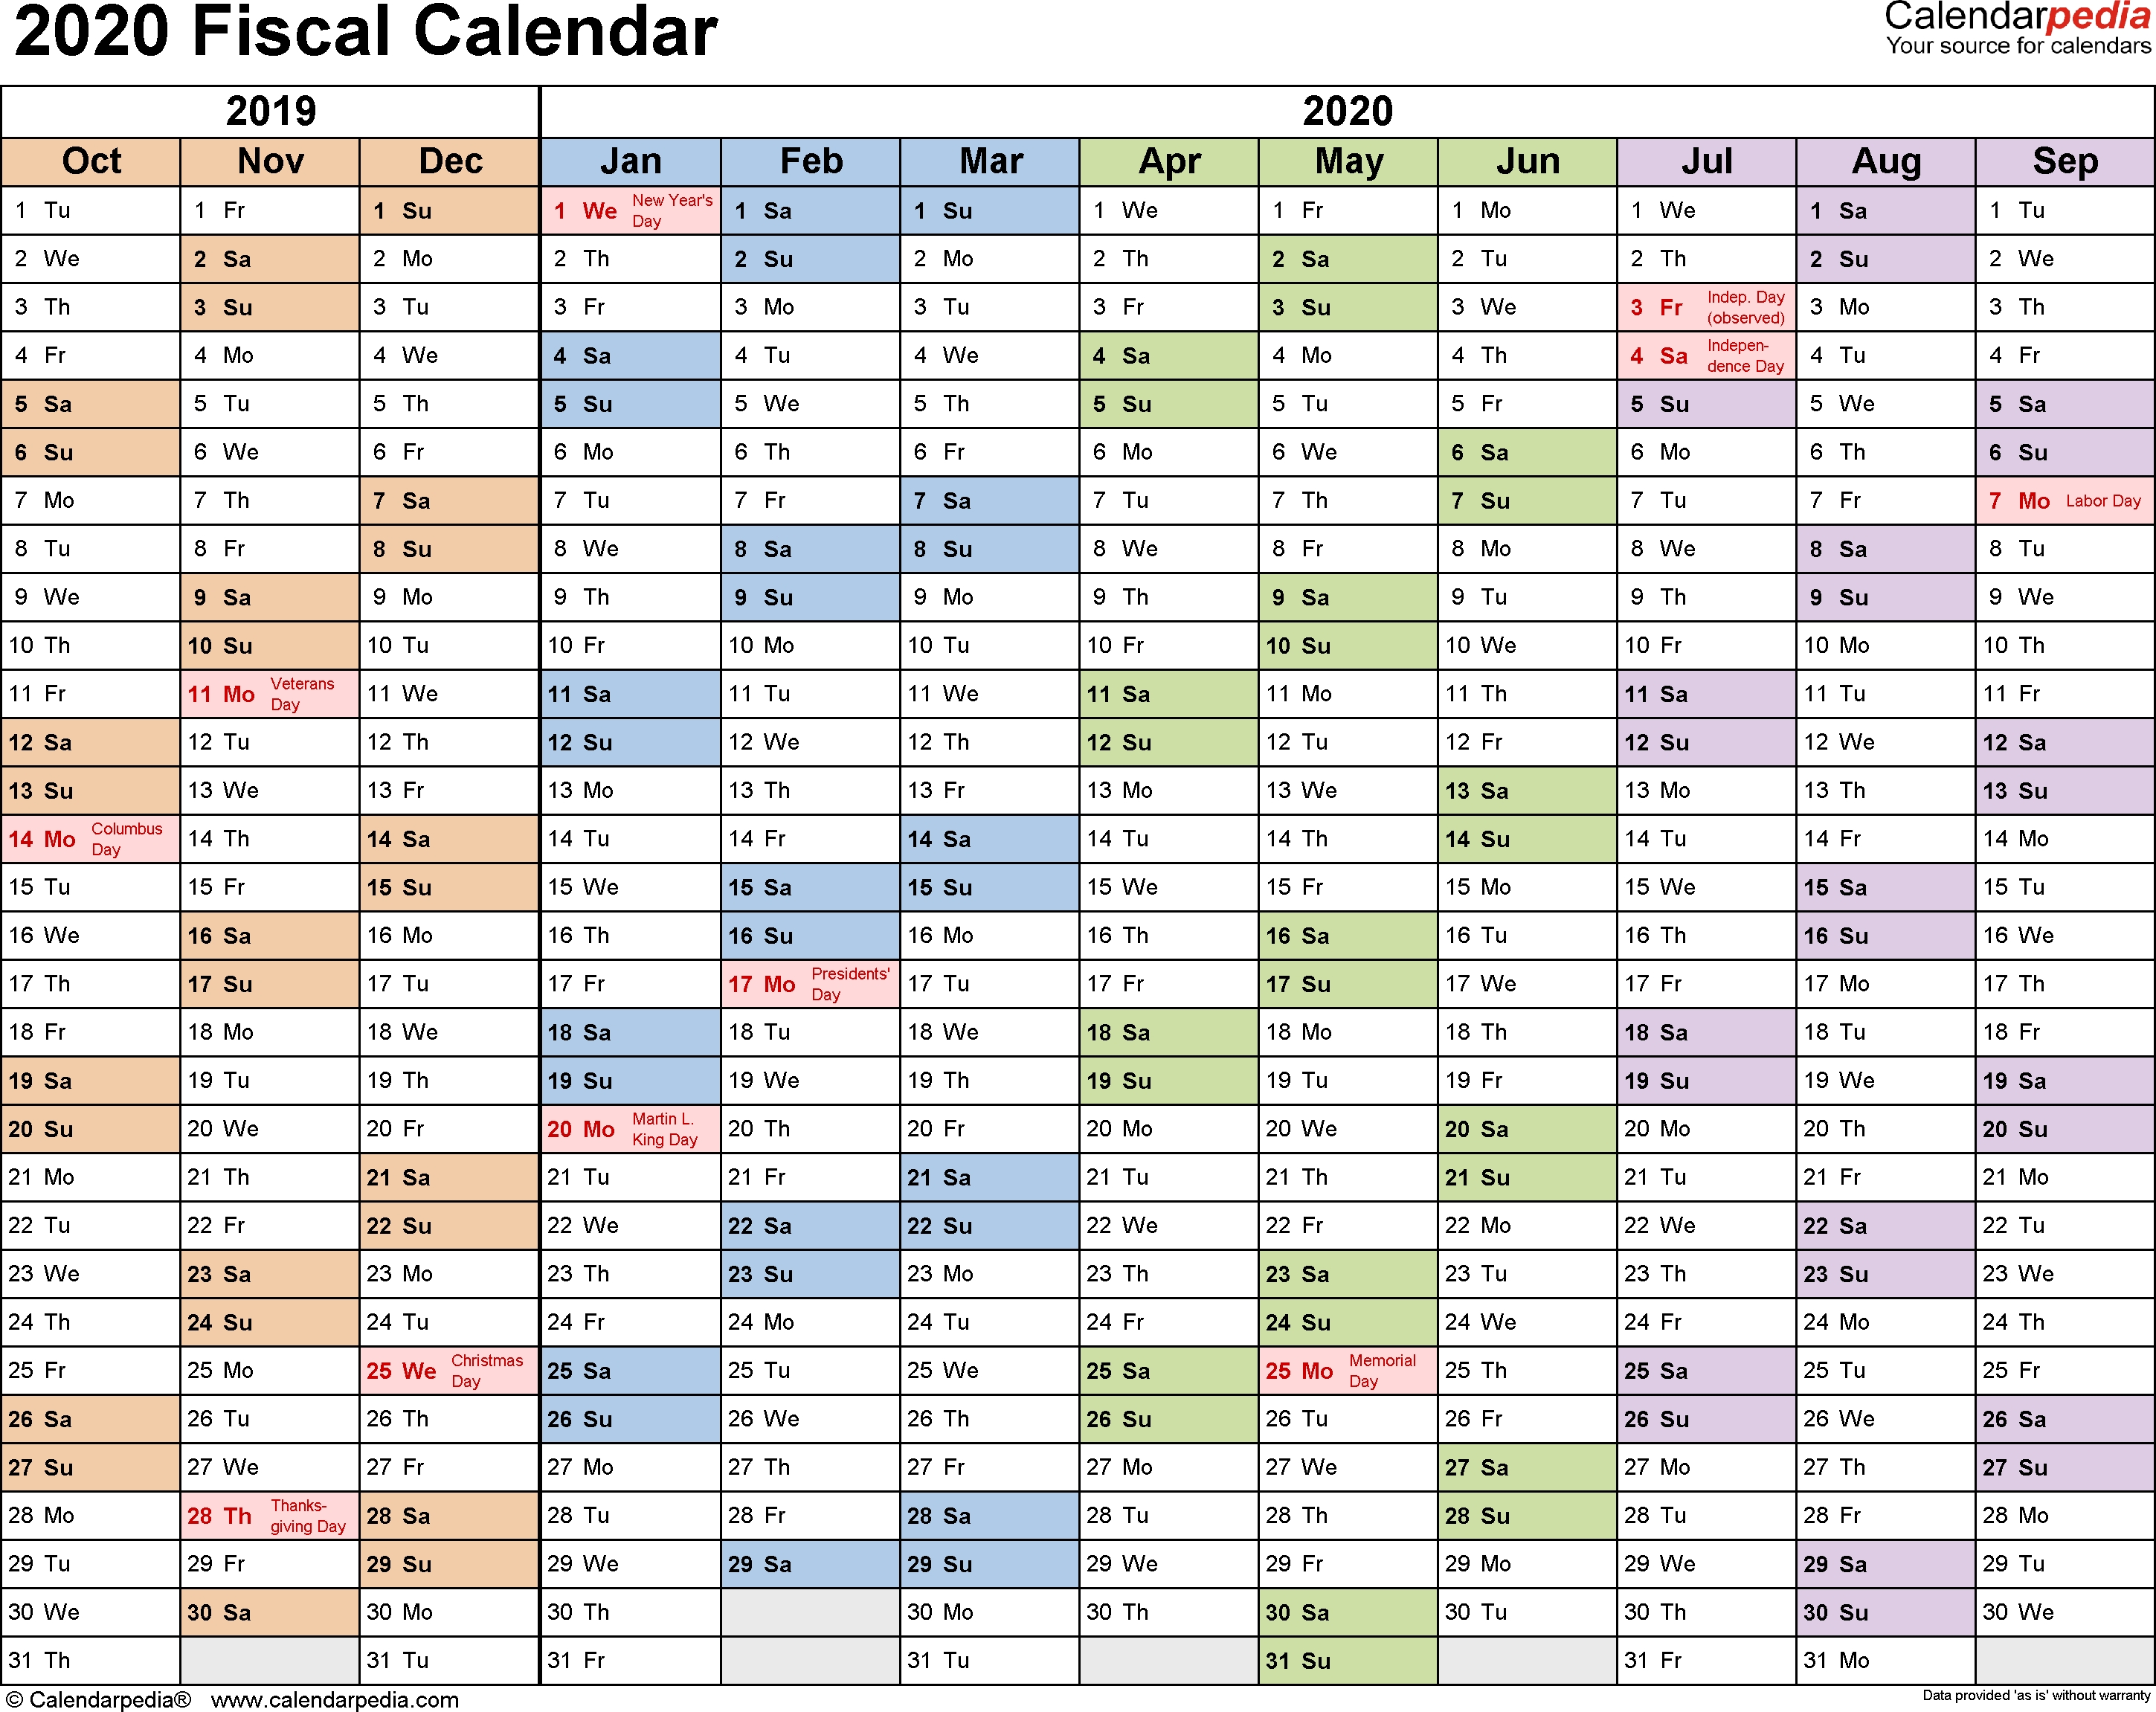 Fiscal Calendars 2020 - Free Printable Excel Templates for Financial Week Calendar 2019 2020